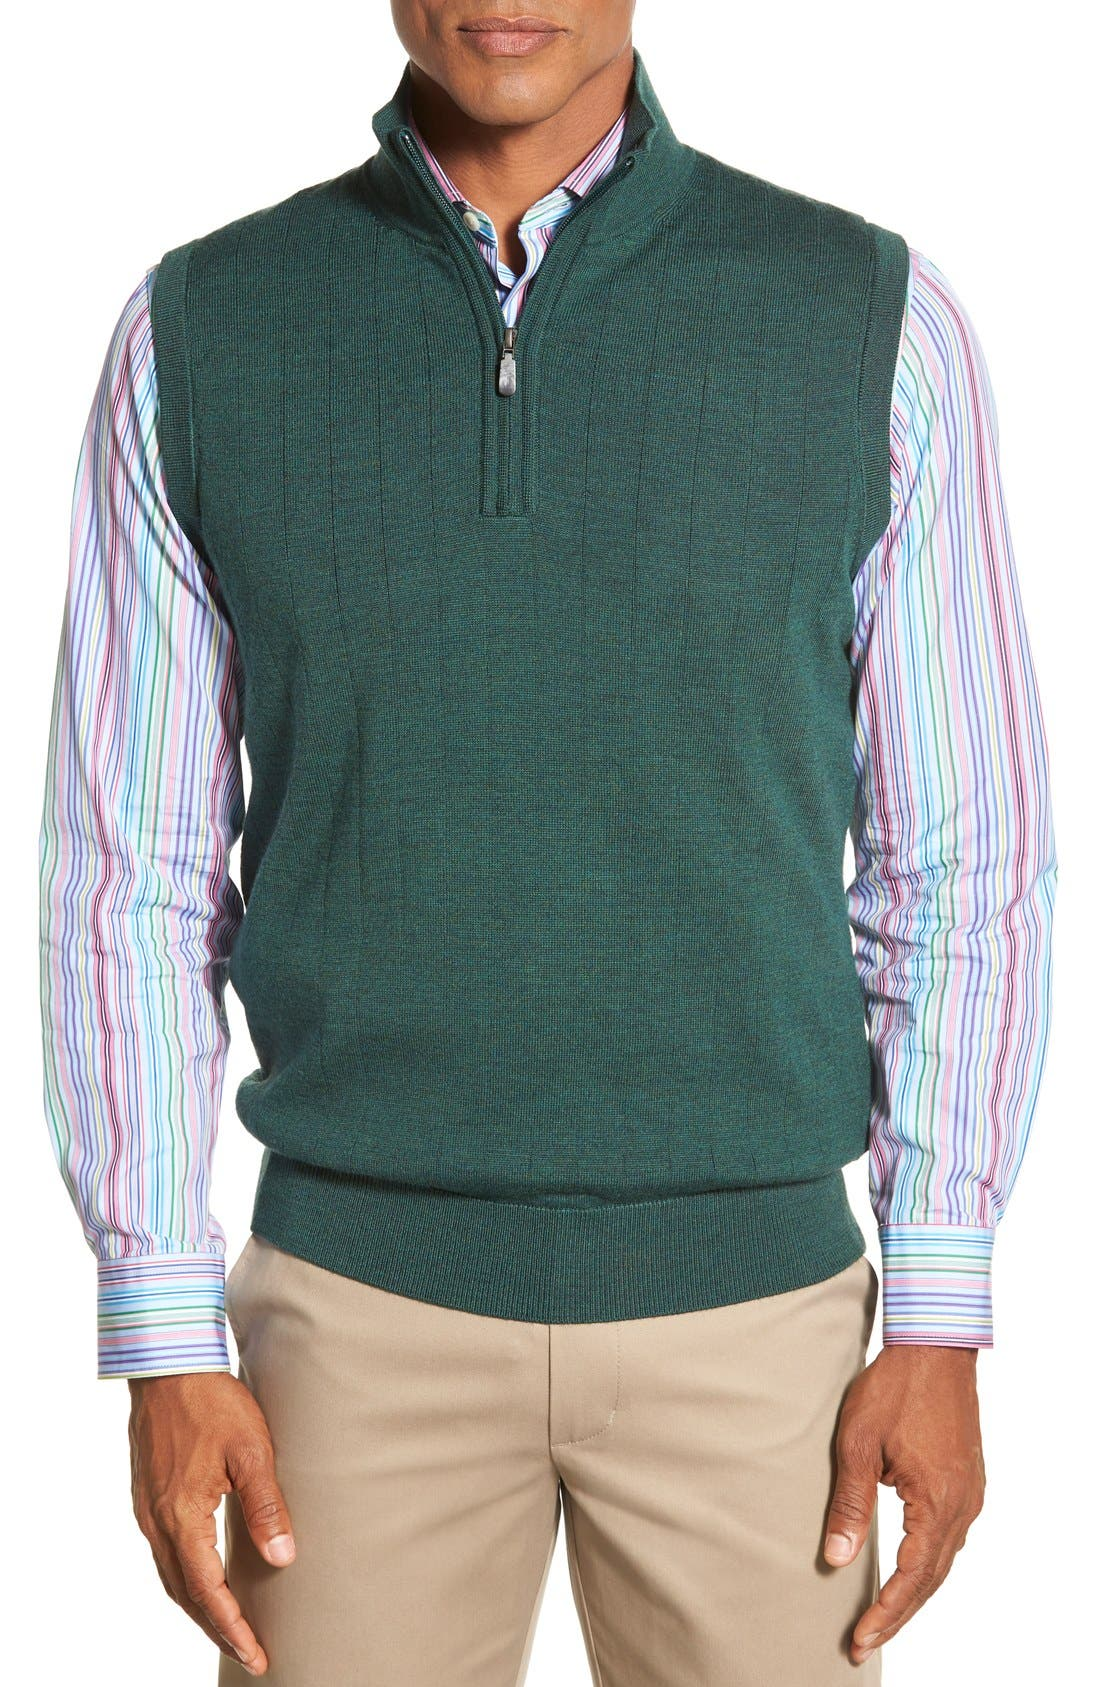 Bobby Jones Quarter Zip Wool Sweater Vest